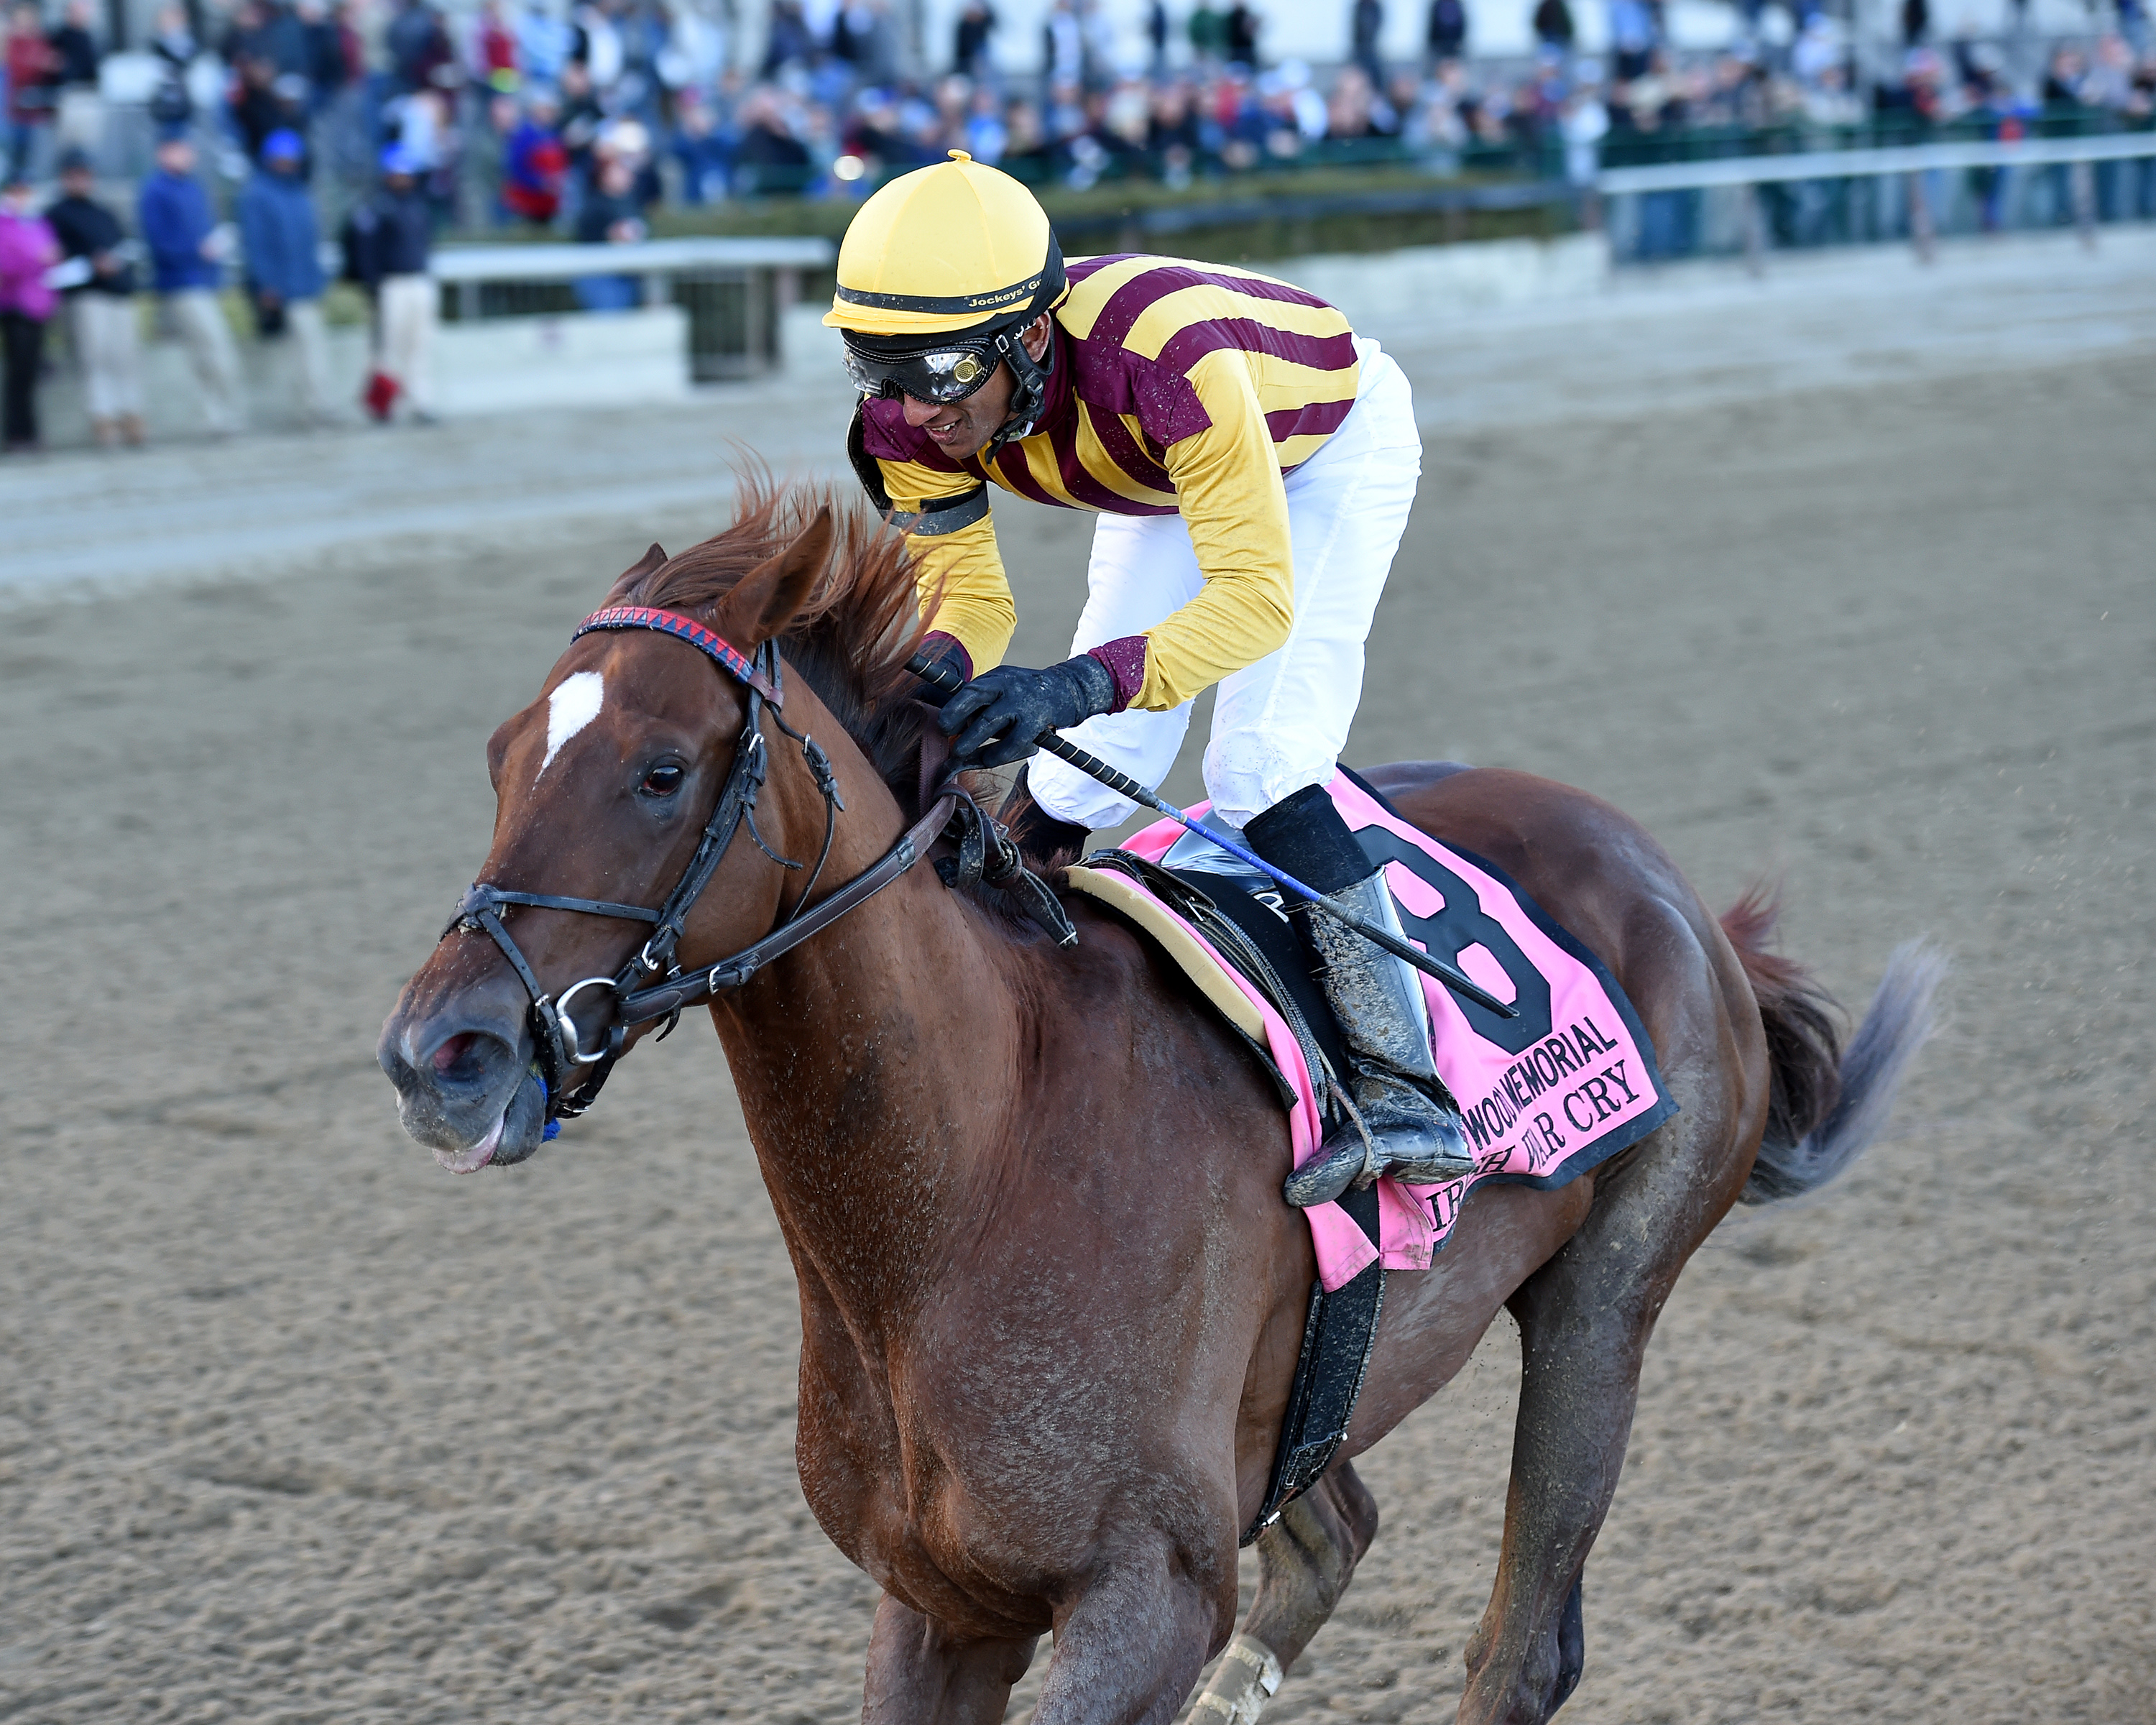 Irish War Cry comes into the Derby off an impressive win in the Wood Memorial Photo Credit: Chelsea Durand/NYRA